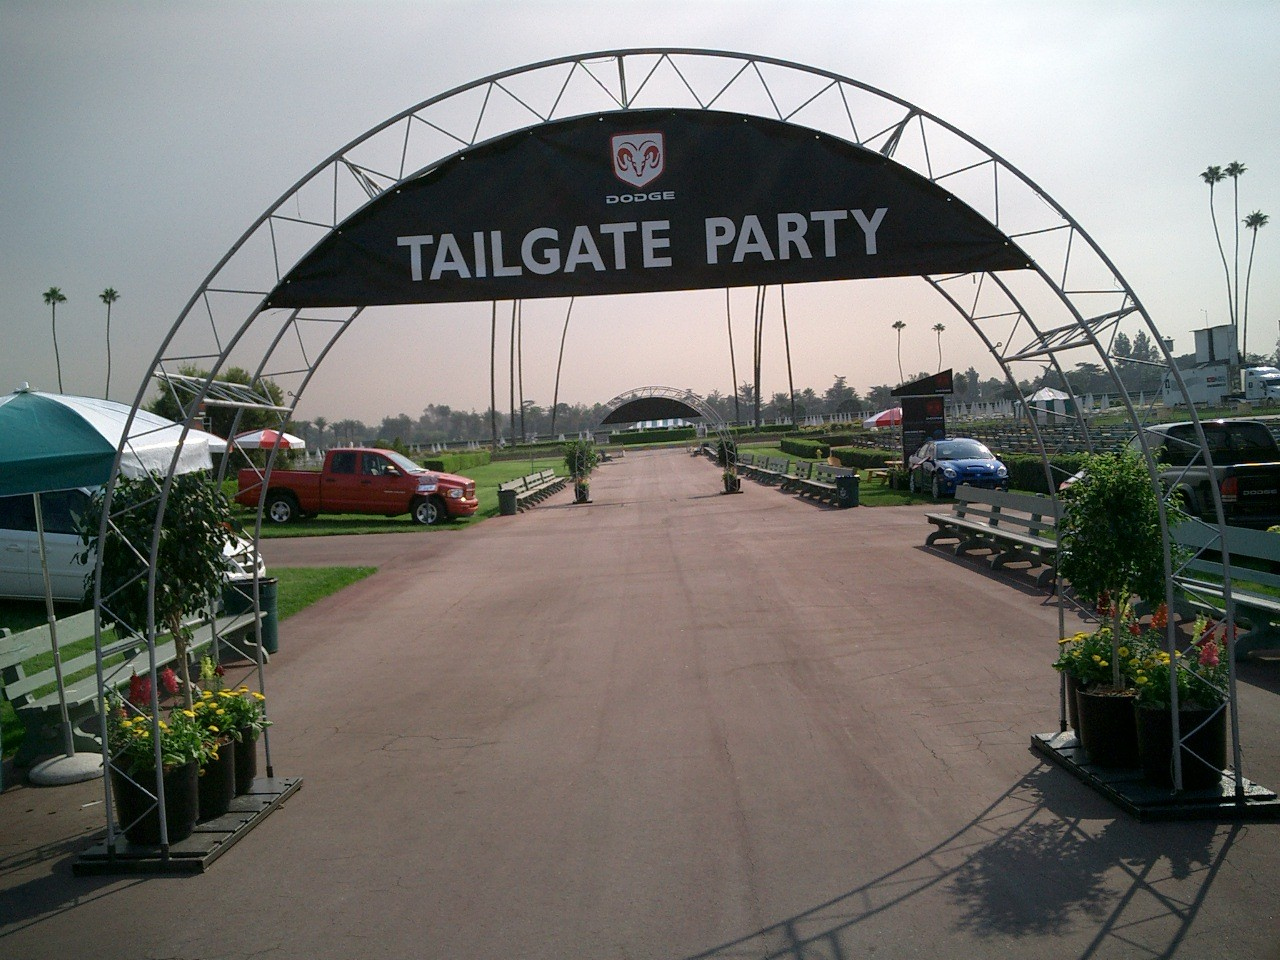 Dodge Tailgate Archway